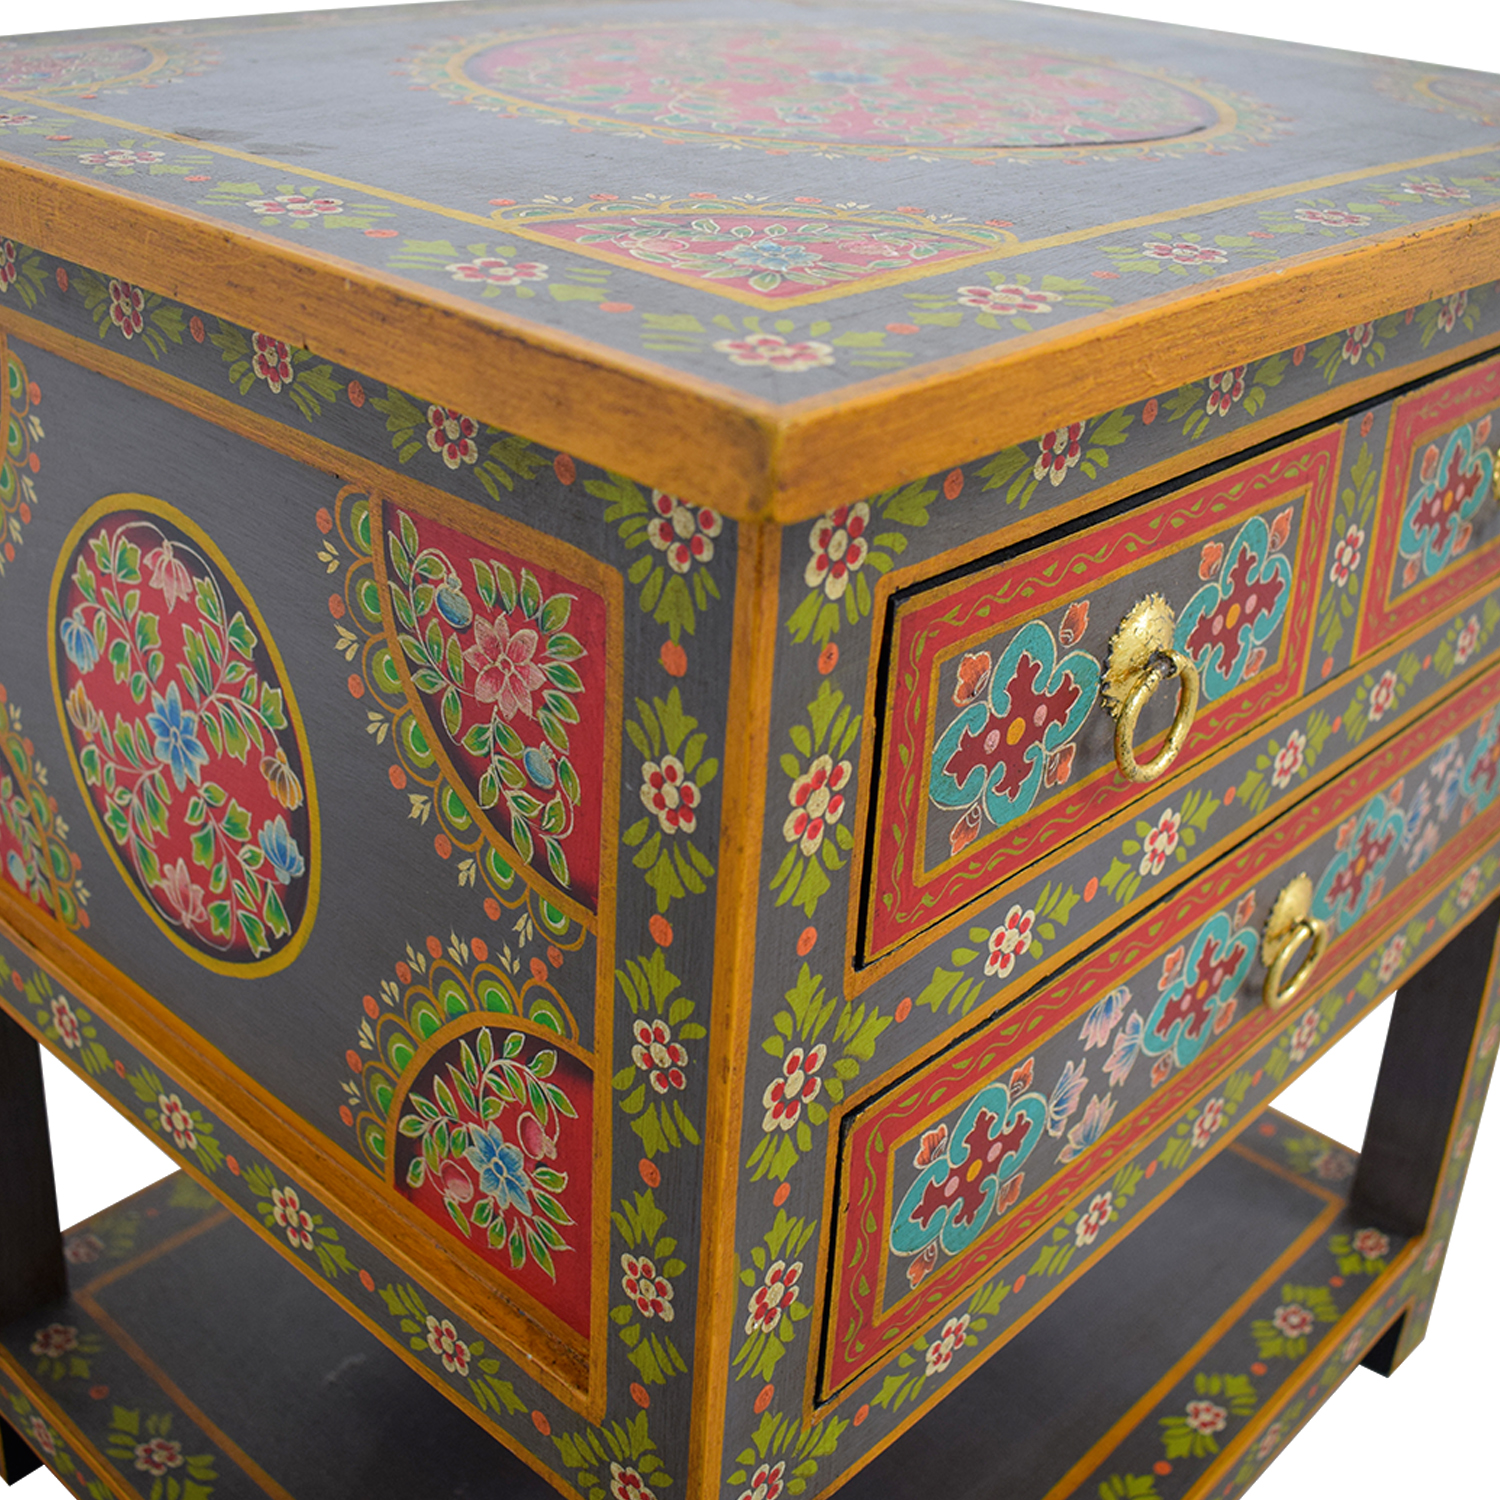 off world market wood floral painted two drawer second hand accent table black metal legs edison bulb lamp stylish coffee drum stool with backrest dining sofa seating plastic